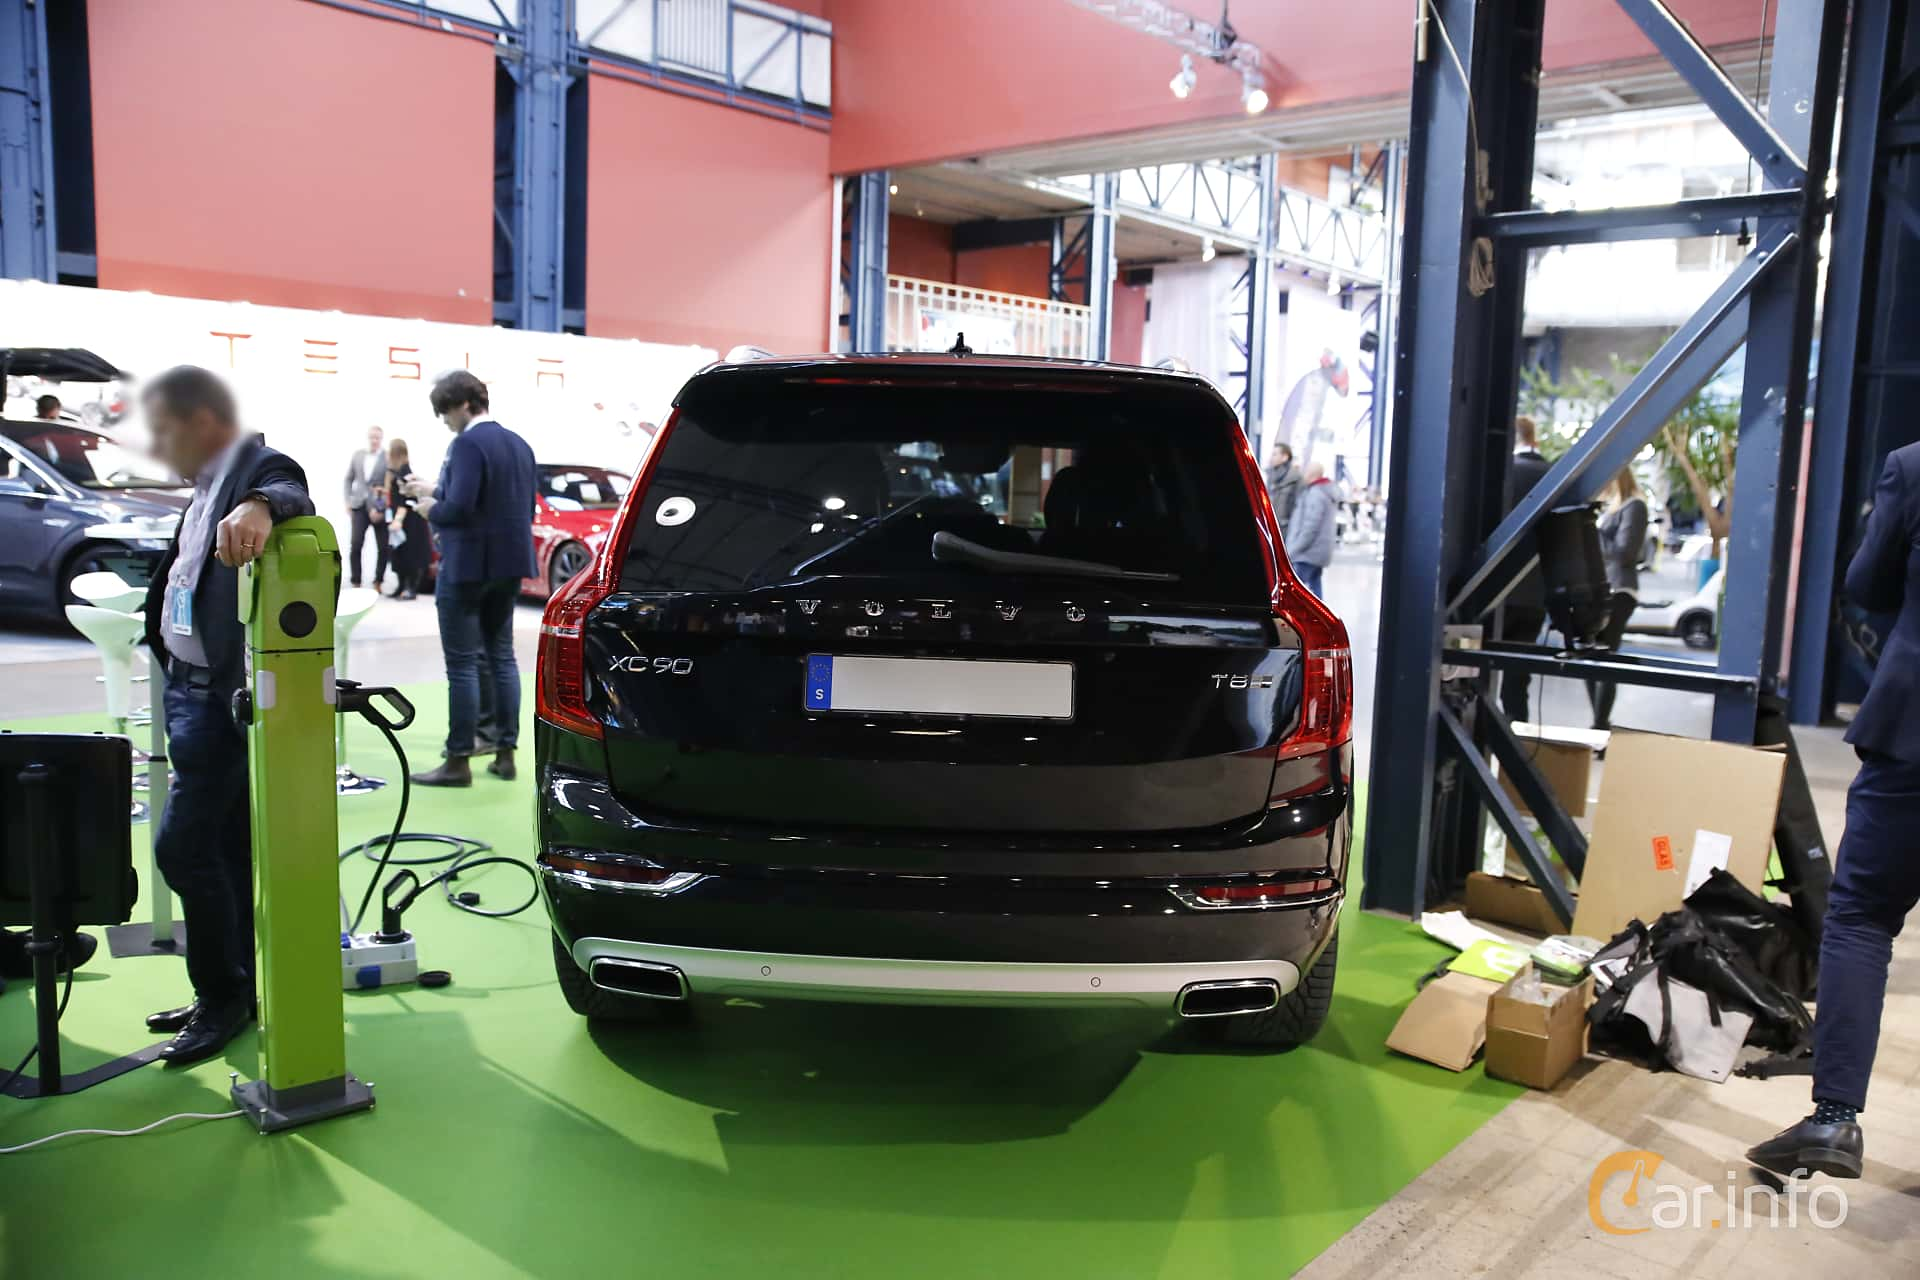 Volvo XC90 T8 AWD Geartronic, 407hp, 2017 at eCar Expo Göteborg 2016